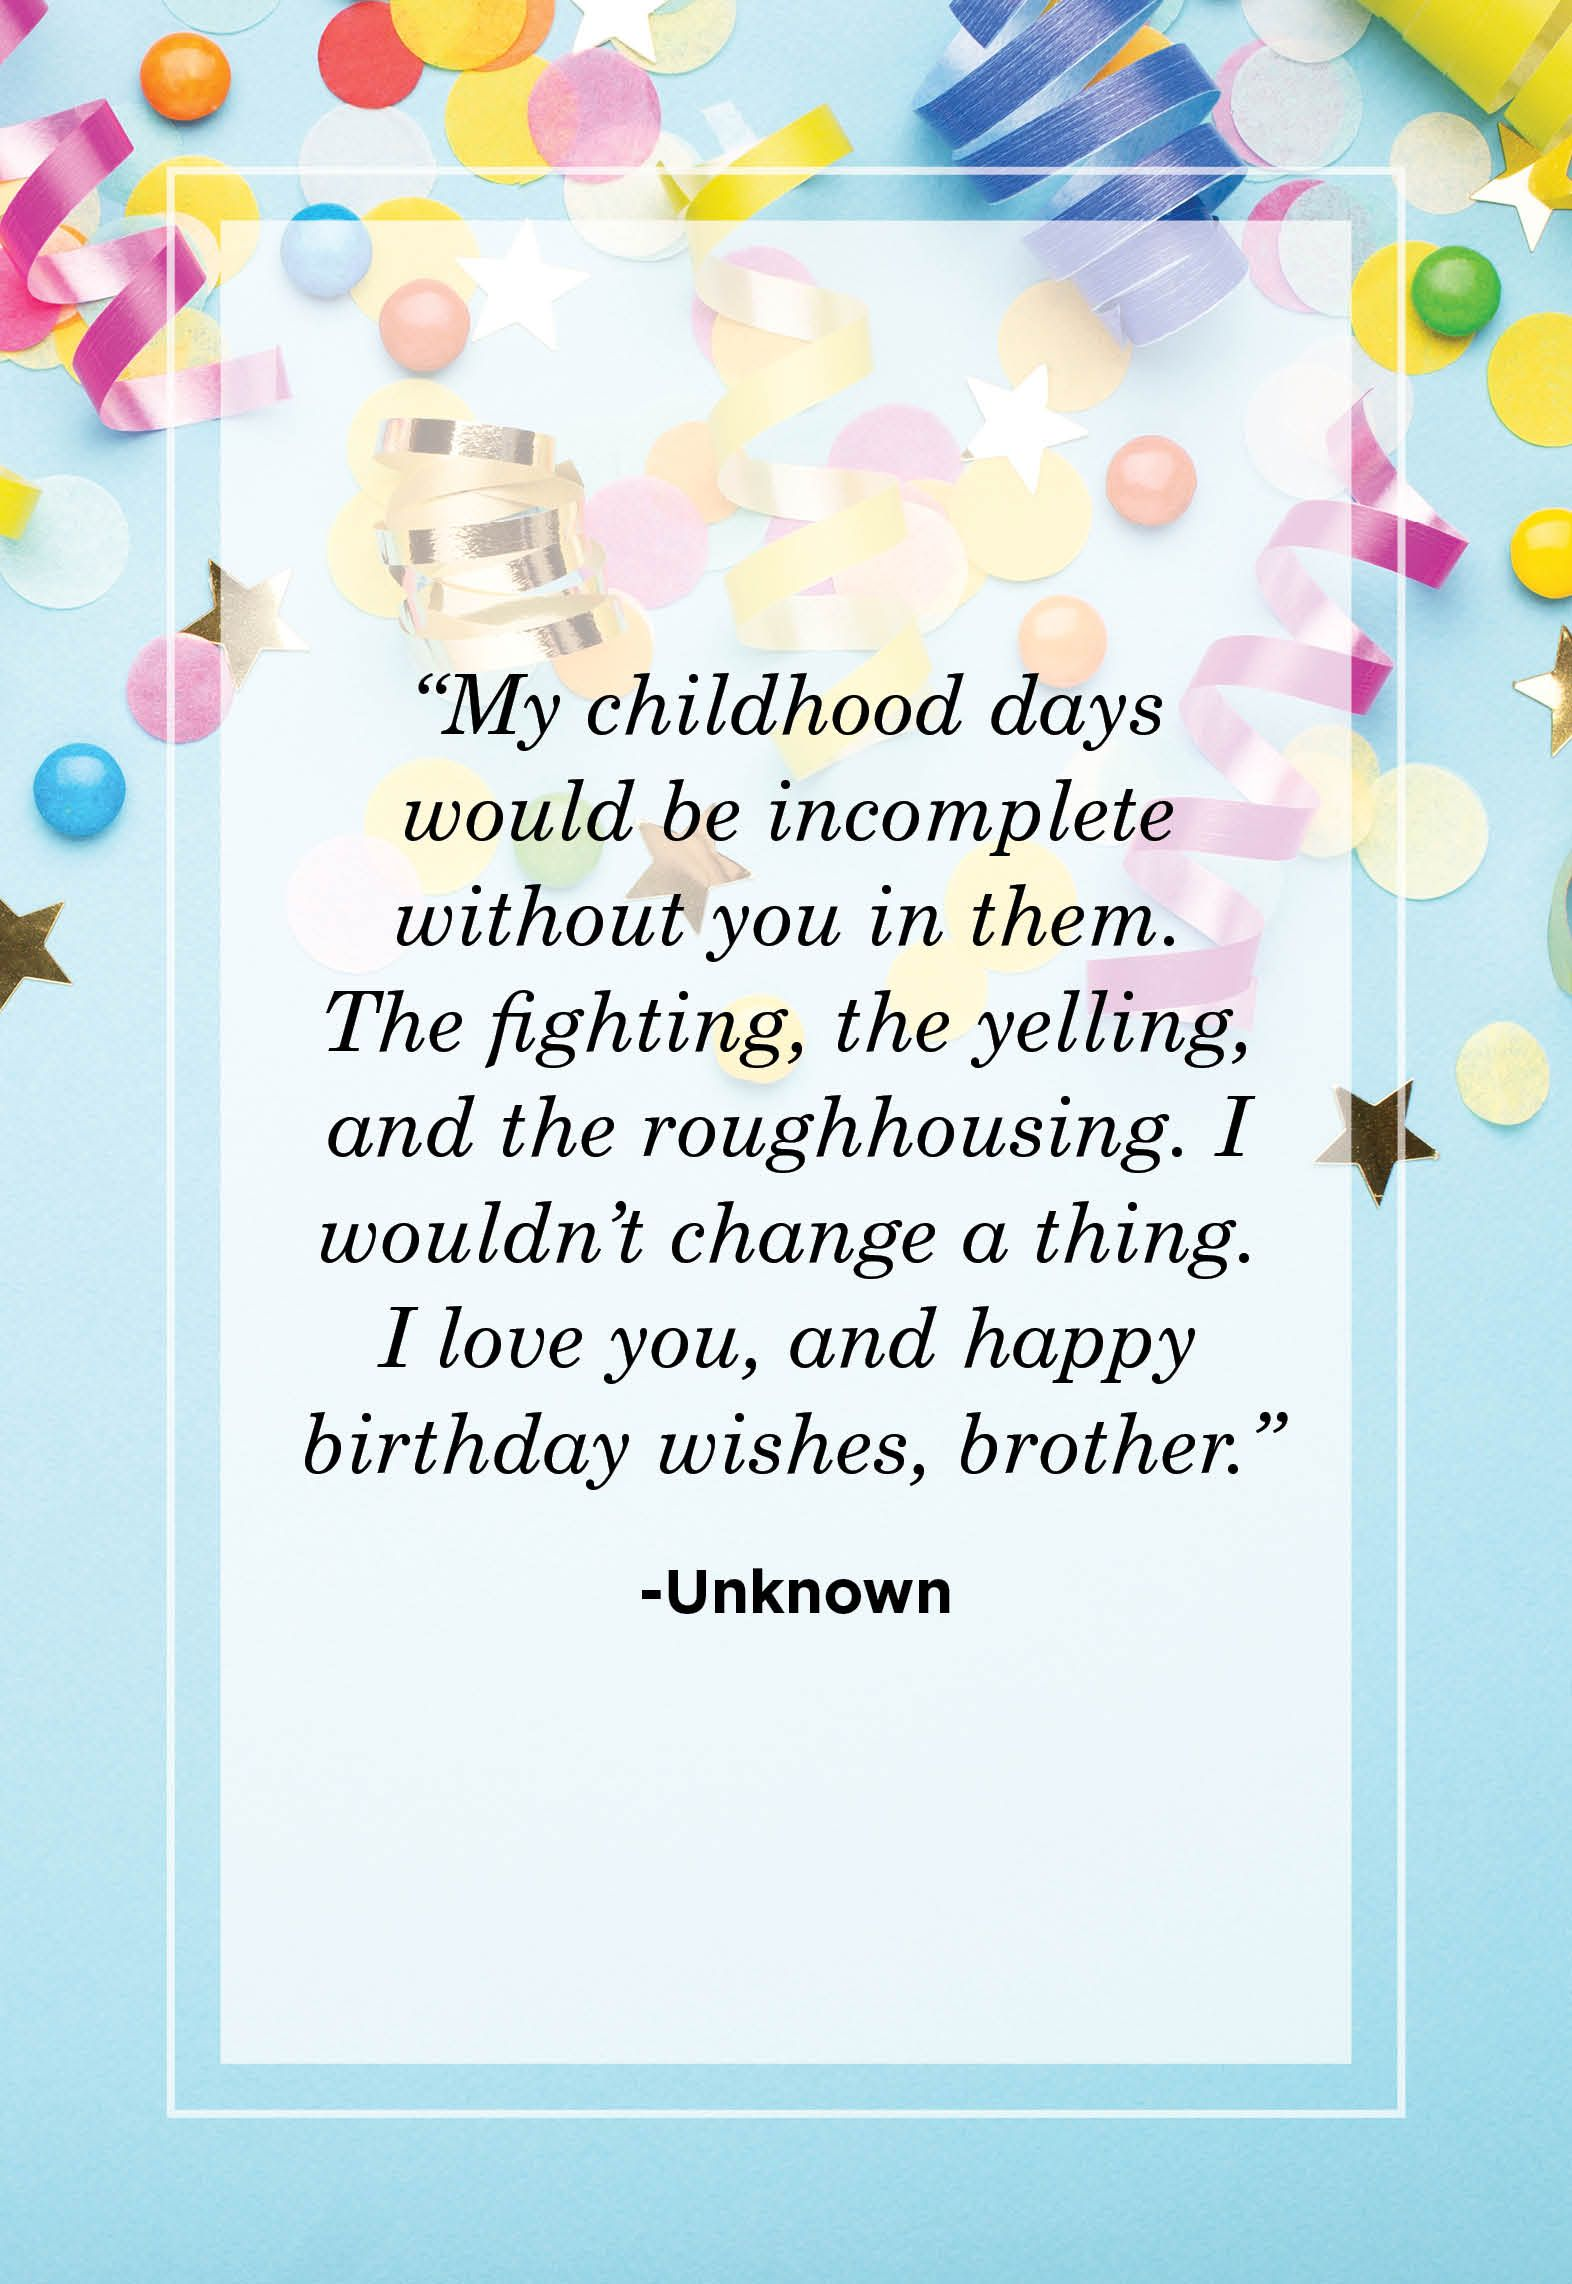 Brother Birthday Image : brother, birthday, image, Birthday, Quotes, Brother, Sibling